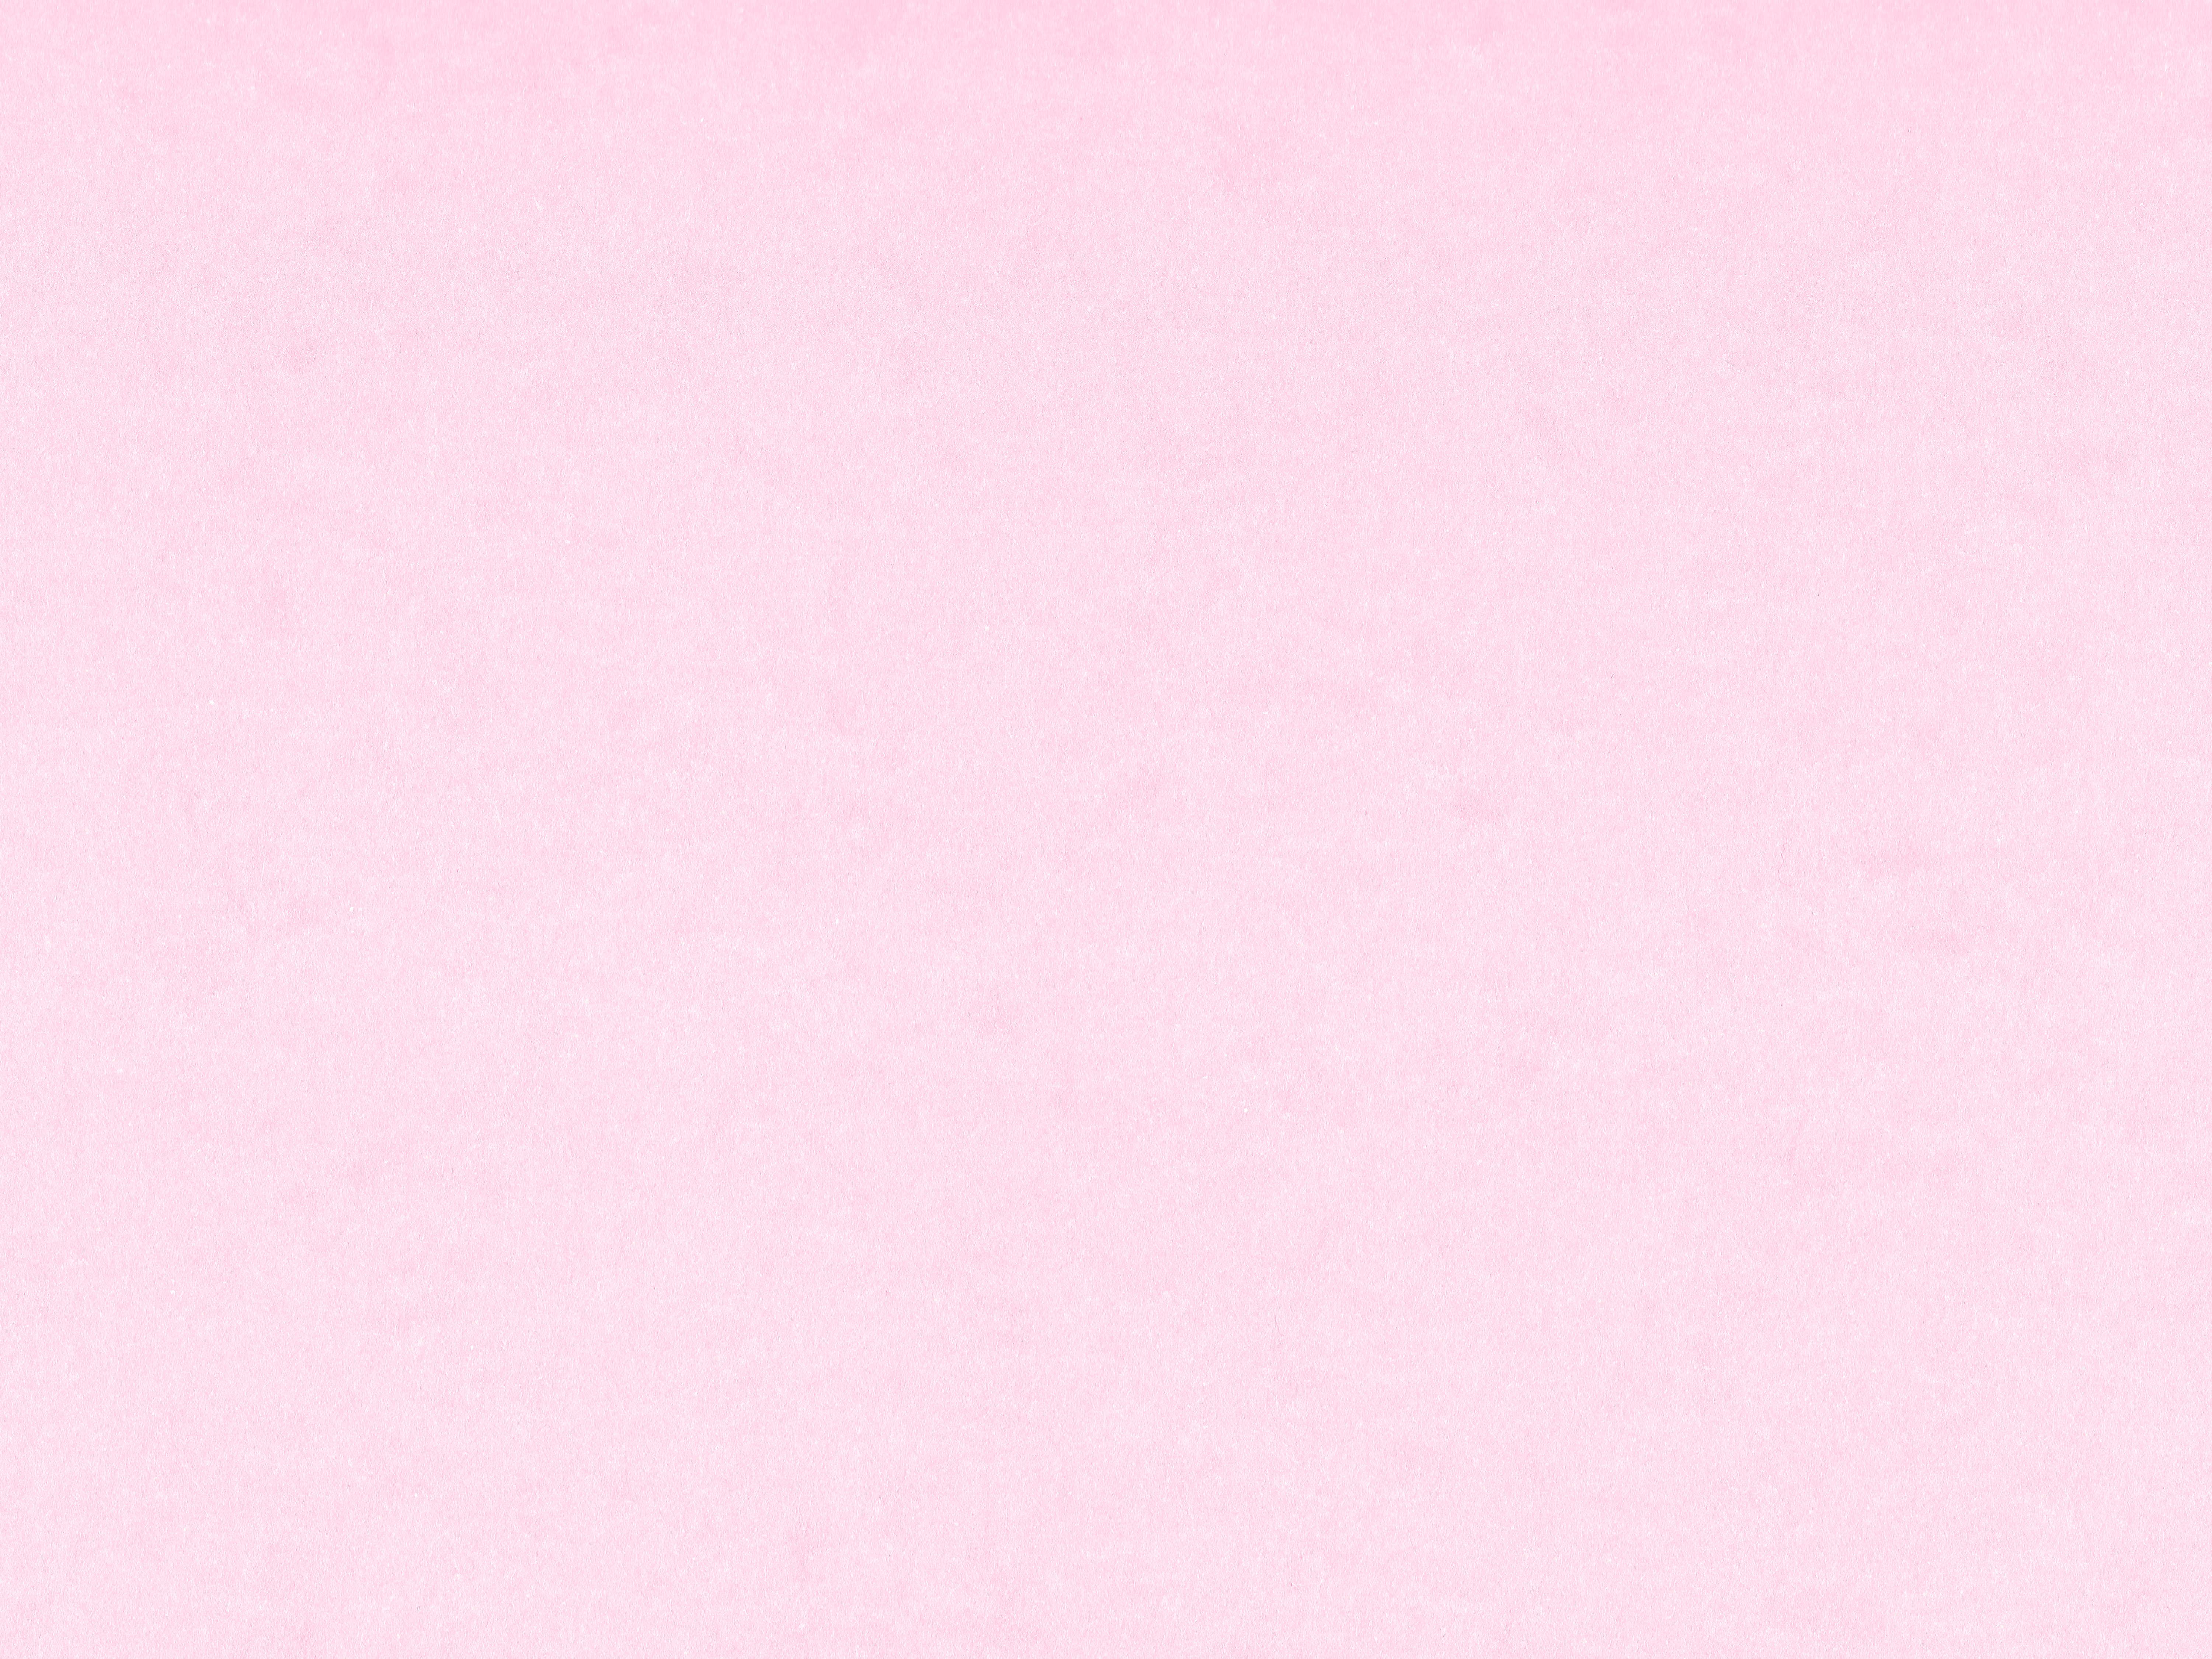 Light Pink Card Stock Paper Texture Picture Free